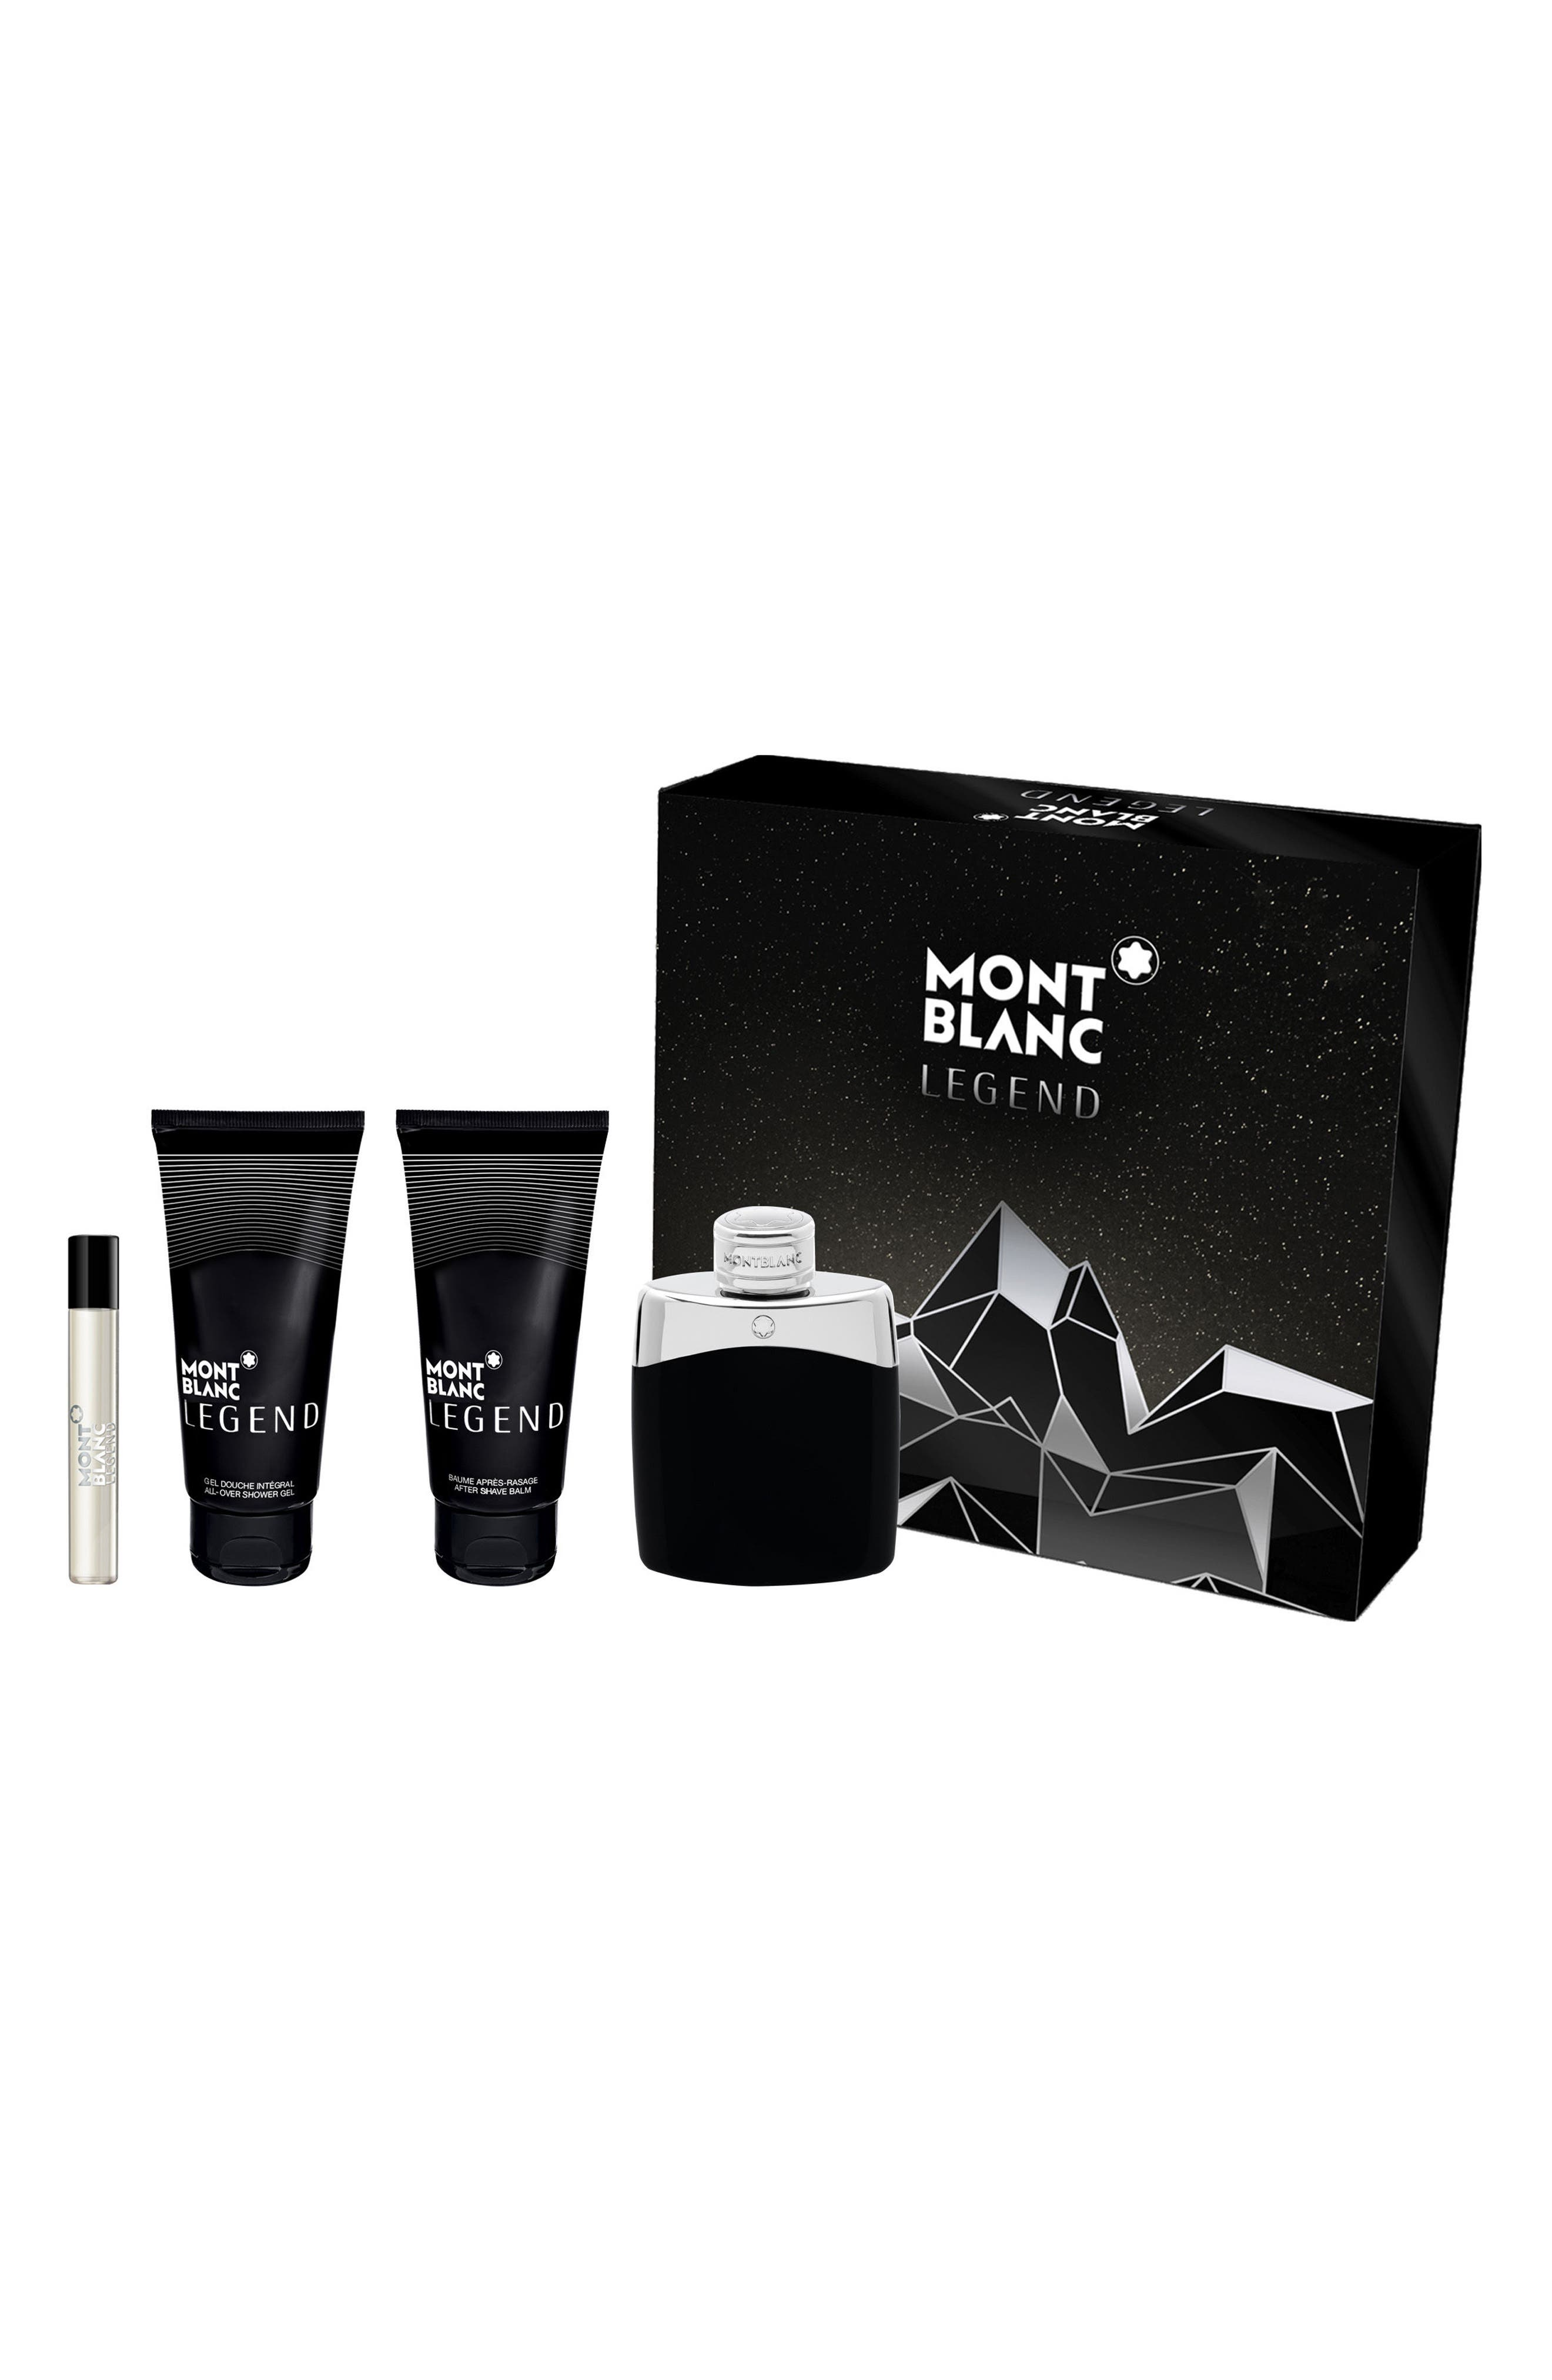 MONTBLANC Legend Spirit Set ($146 Value)